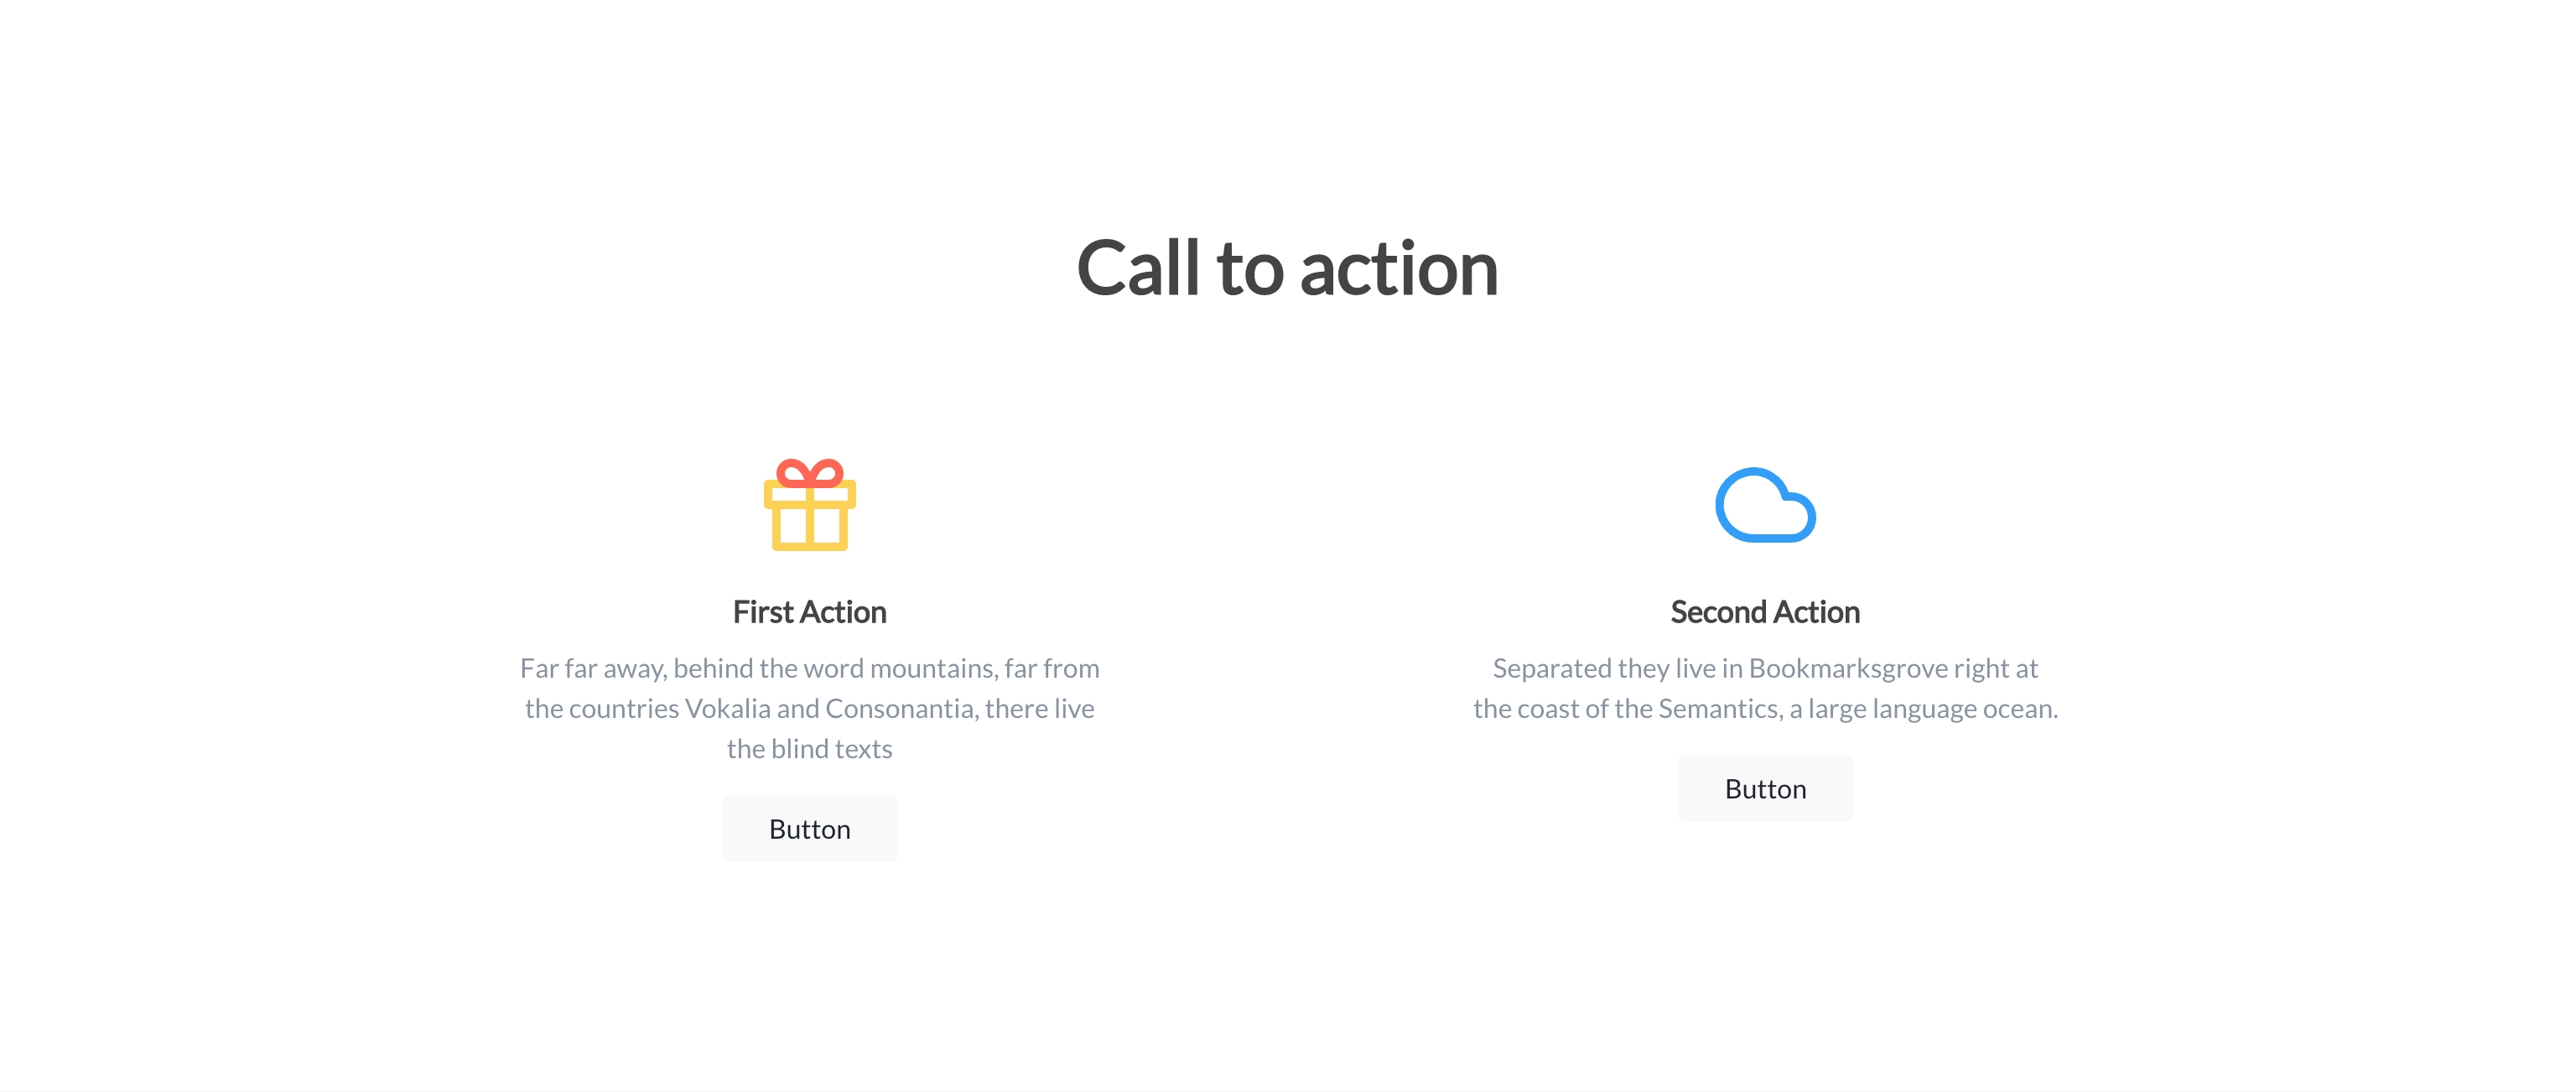 call-to-action 7